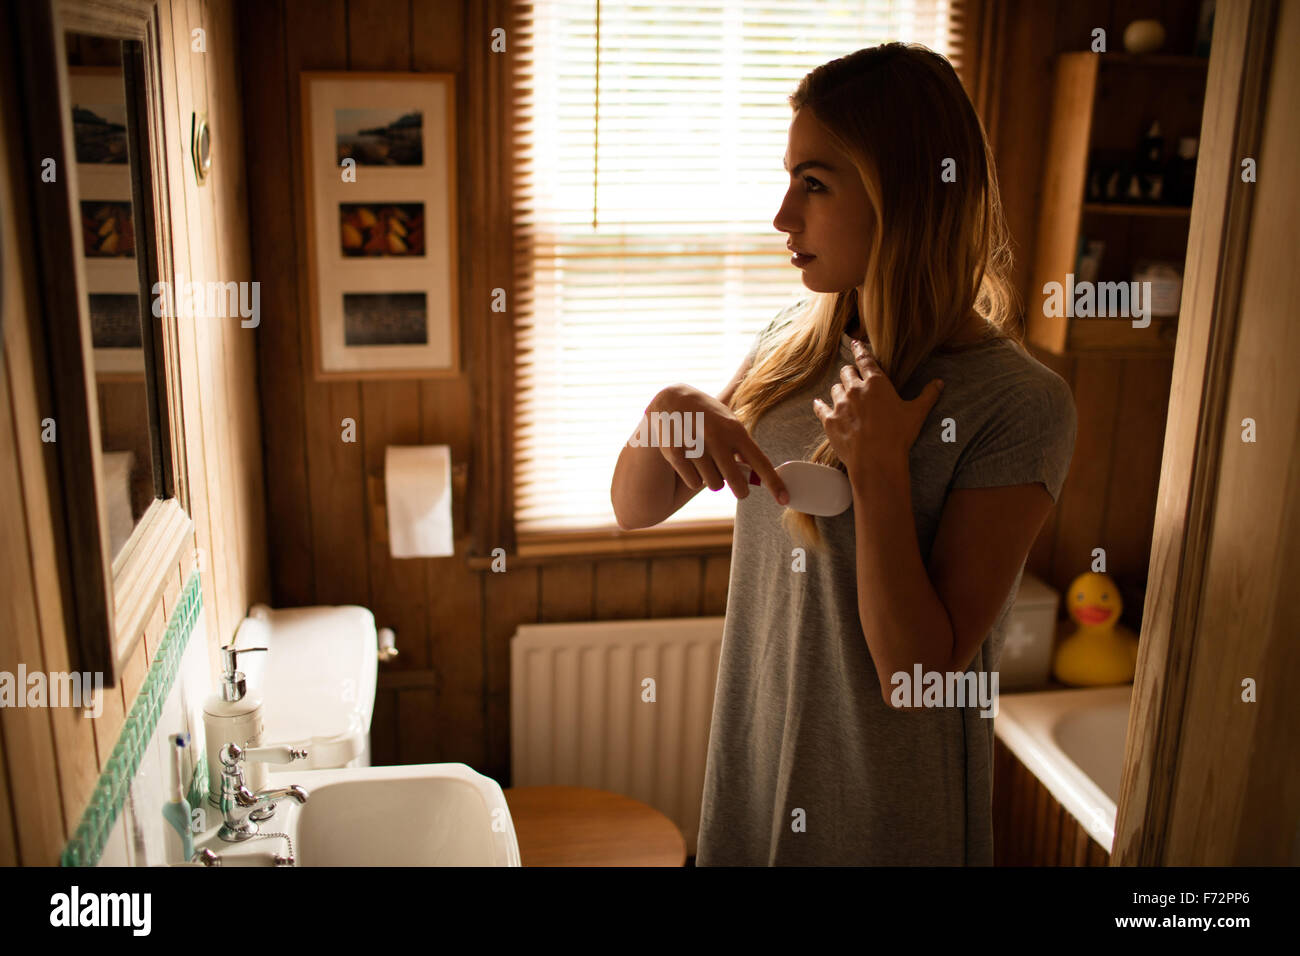 Pretty woman brushing her hair in the bathroom - Stock Image